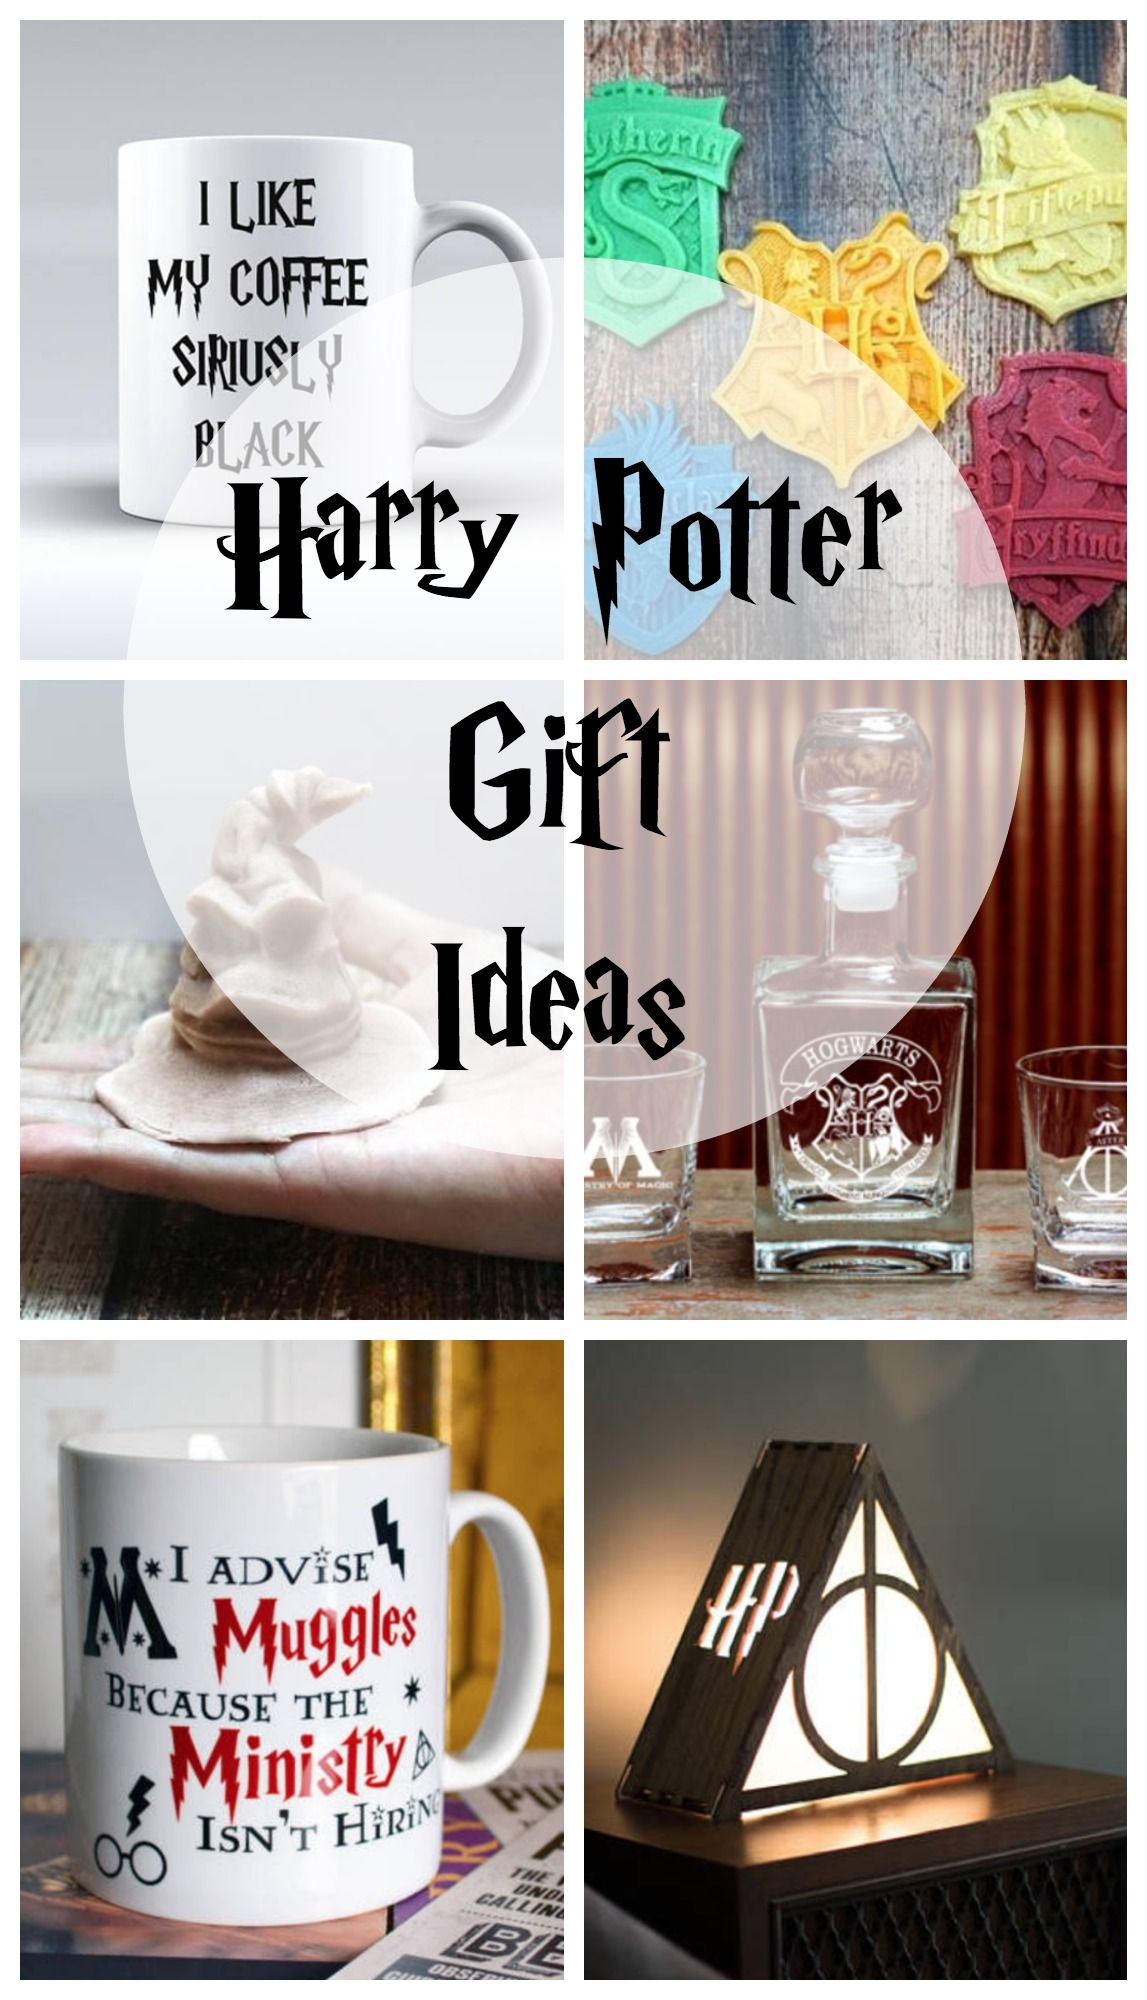 Harry Potter Gift Ideas Anyone Would Love Some Of This And That Harry Potter Gifts Diy Harry Potter Gifts Christmas Gifts